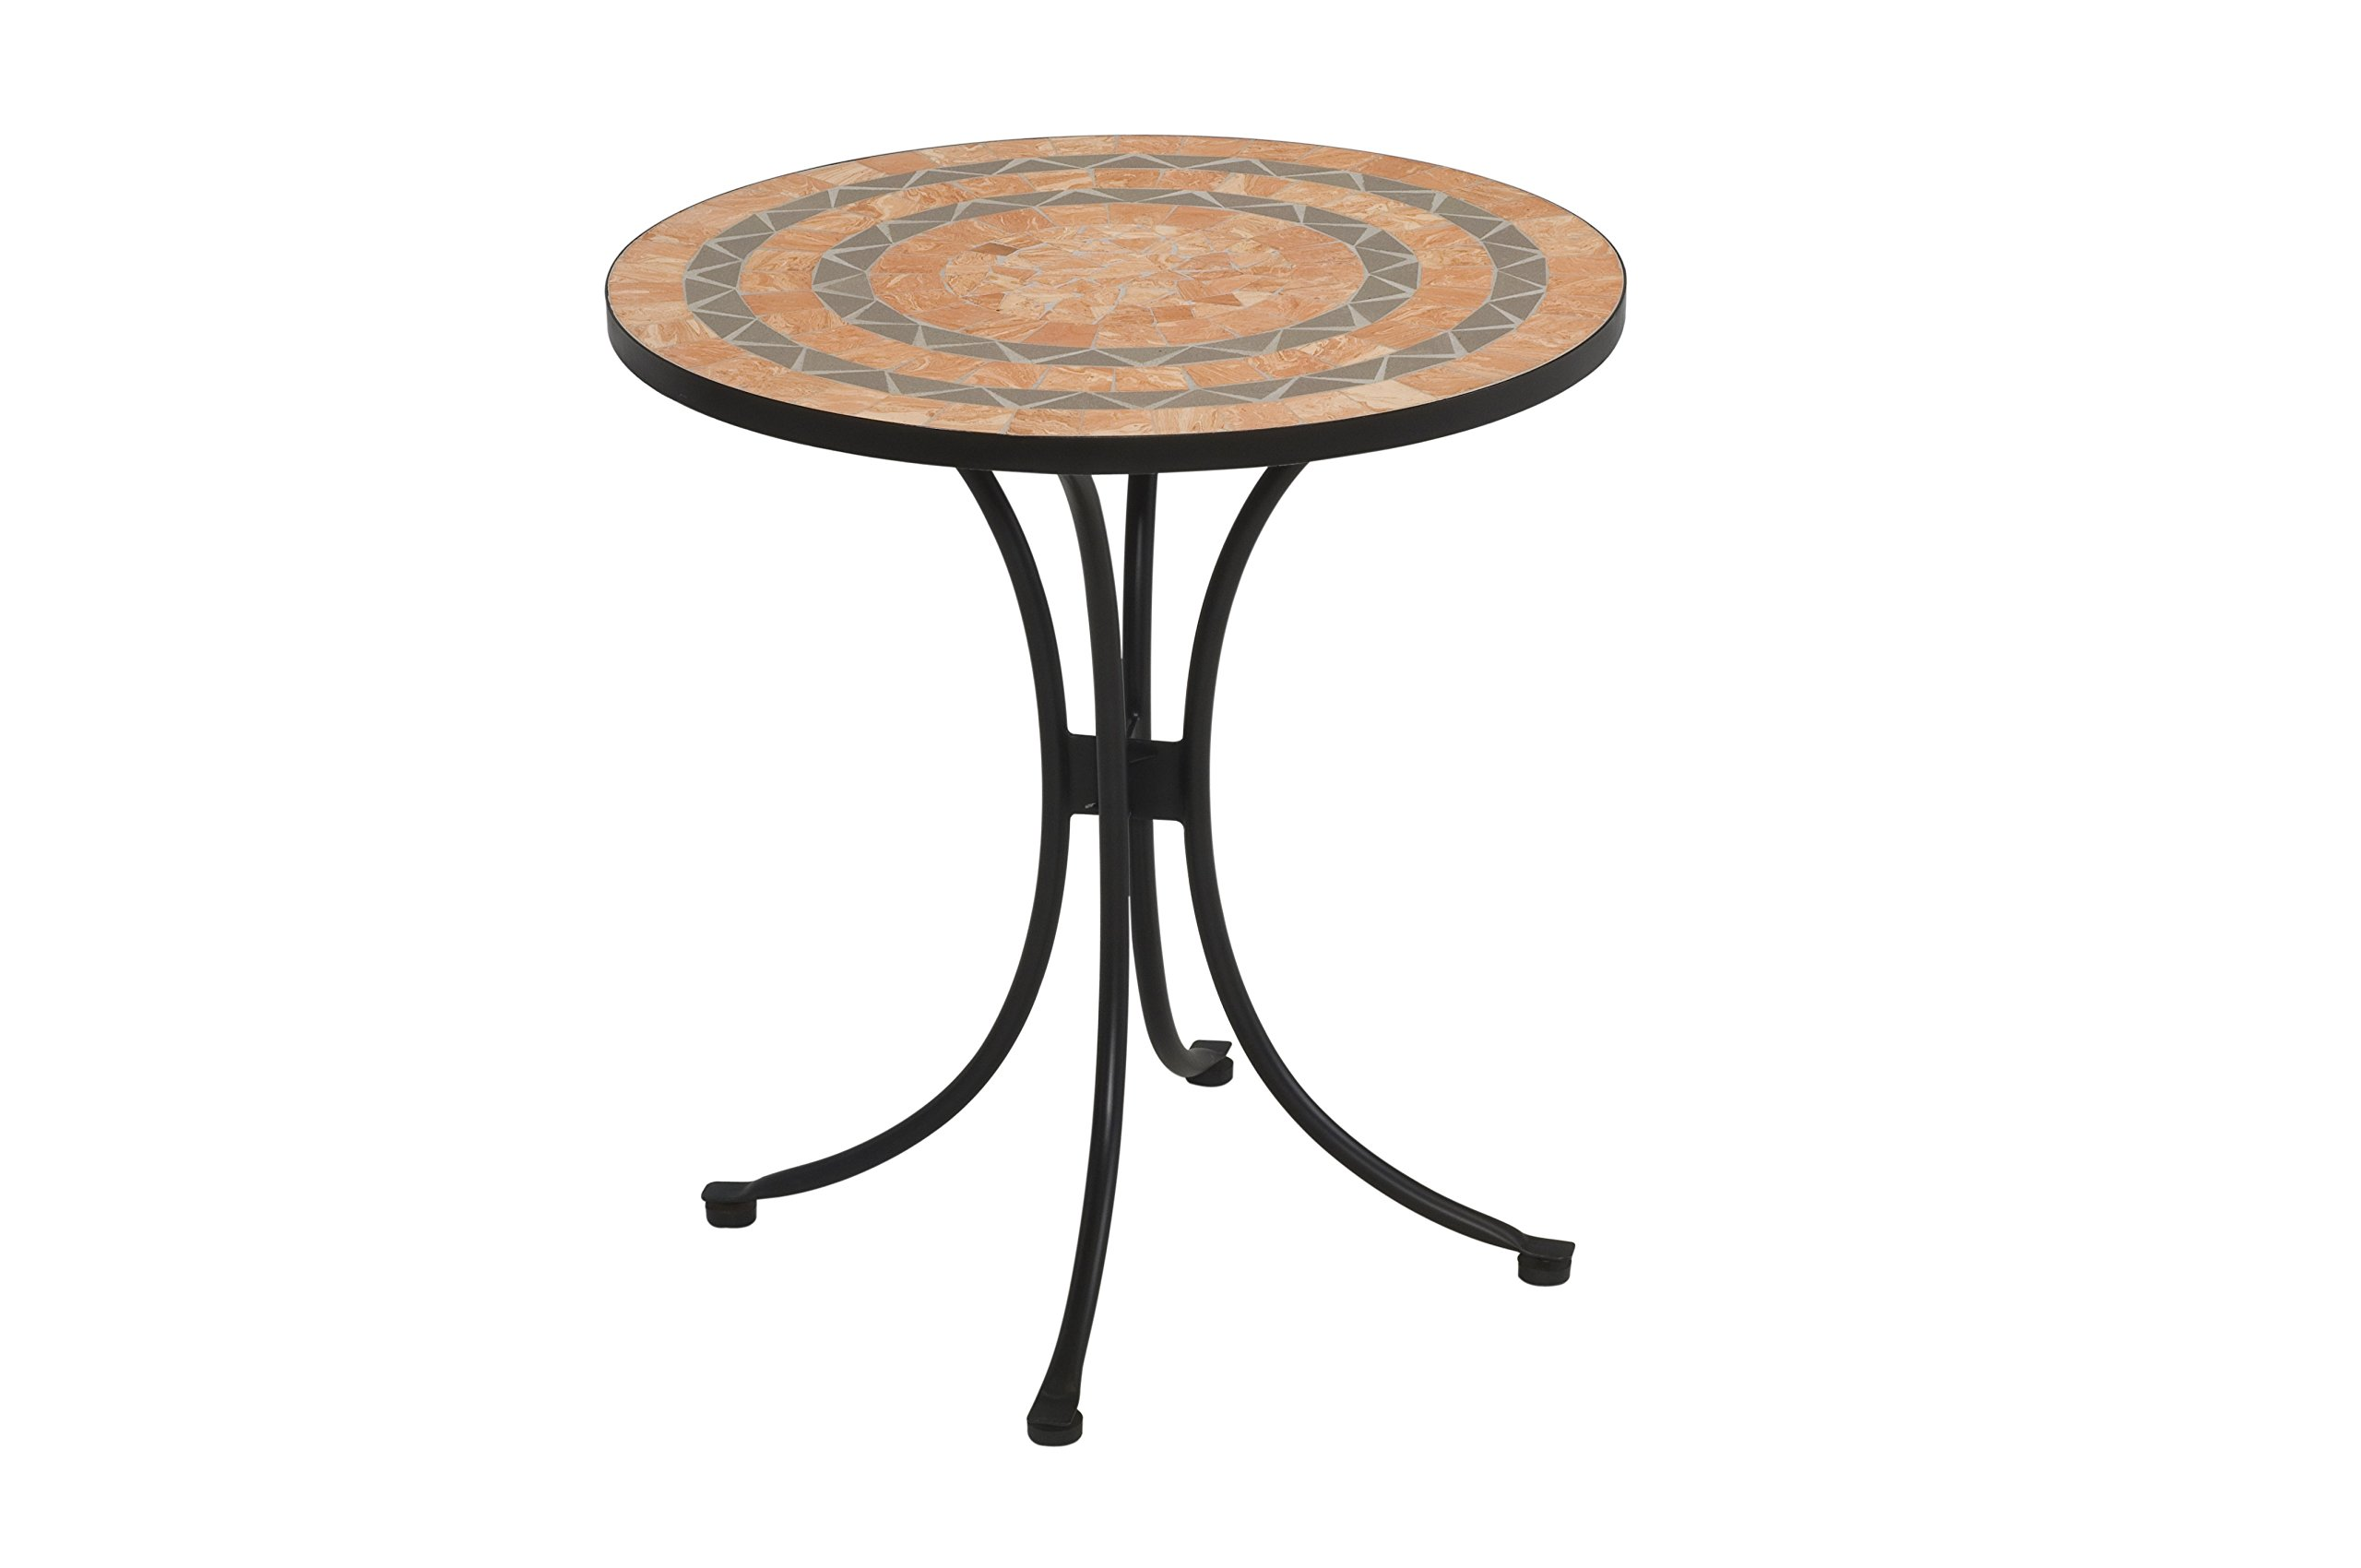 Home Styles 5603-34 Bistro Terra Cotta Tile Top Dining Table